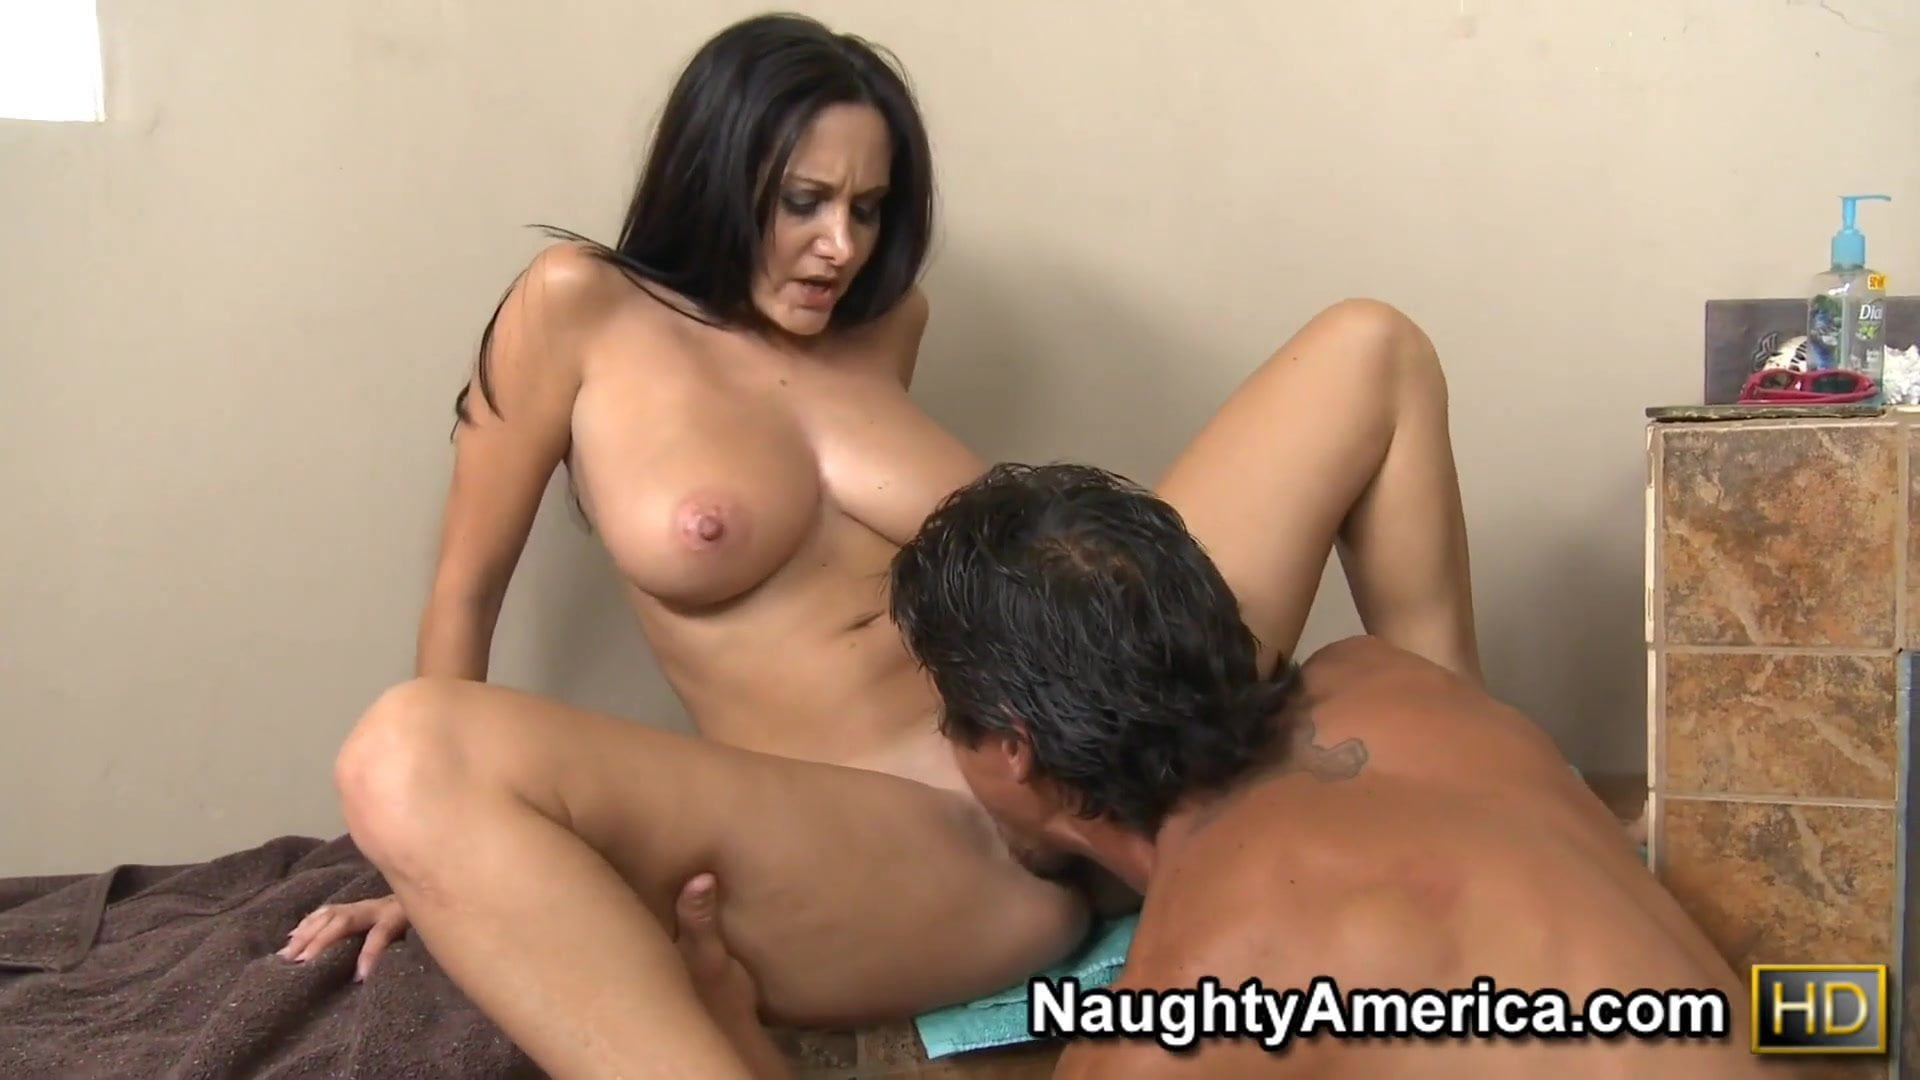 Naughty America Ava Addams fucking in the pool